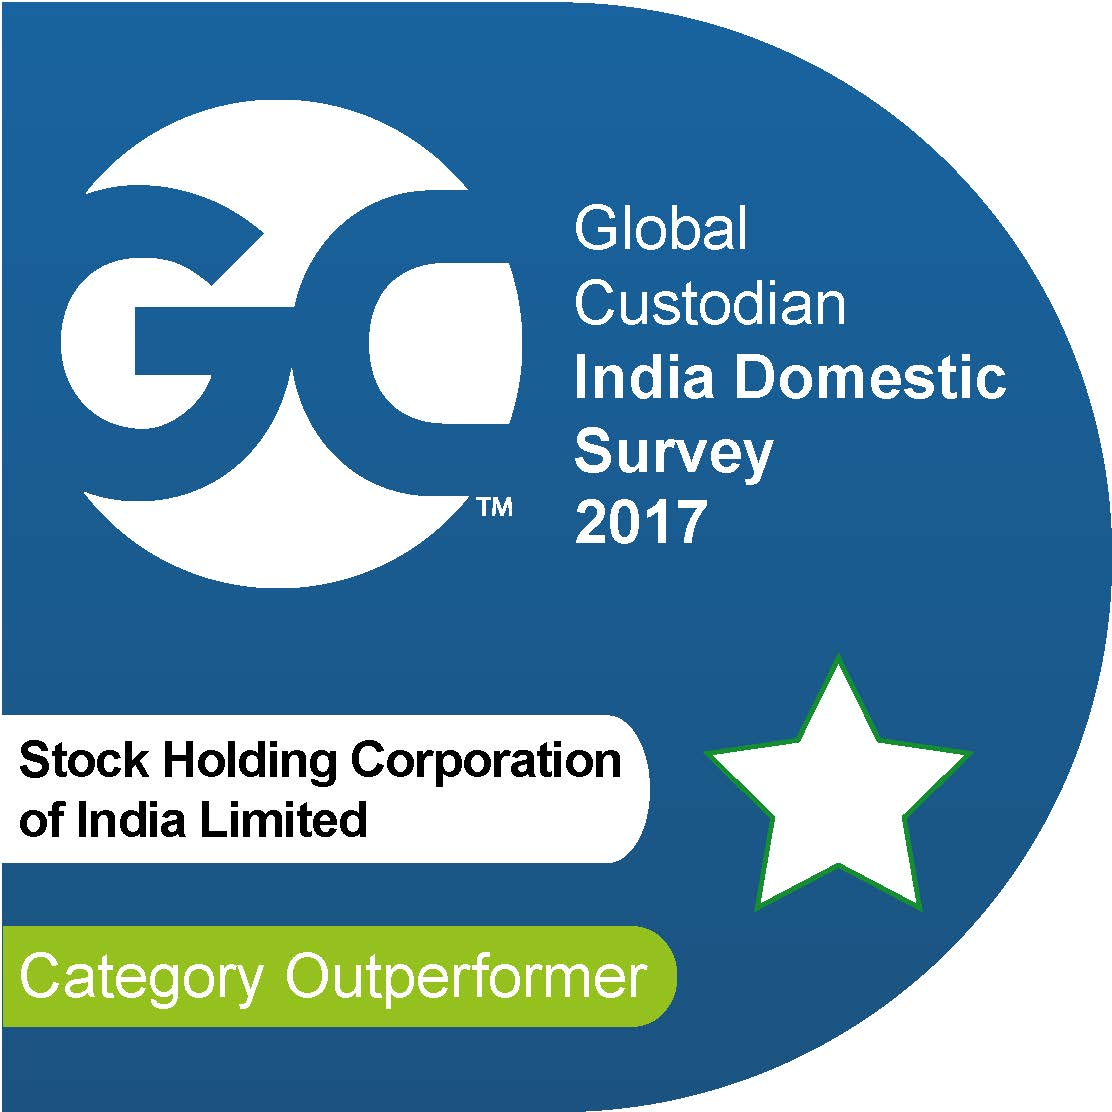 StockHolding Corporation Of India Limited BEST CUSTODIAN BUSINESS EXCELLENCE